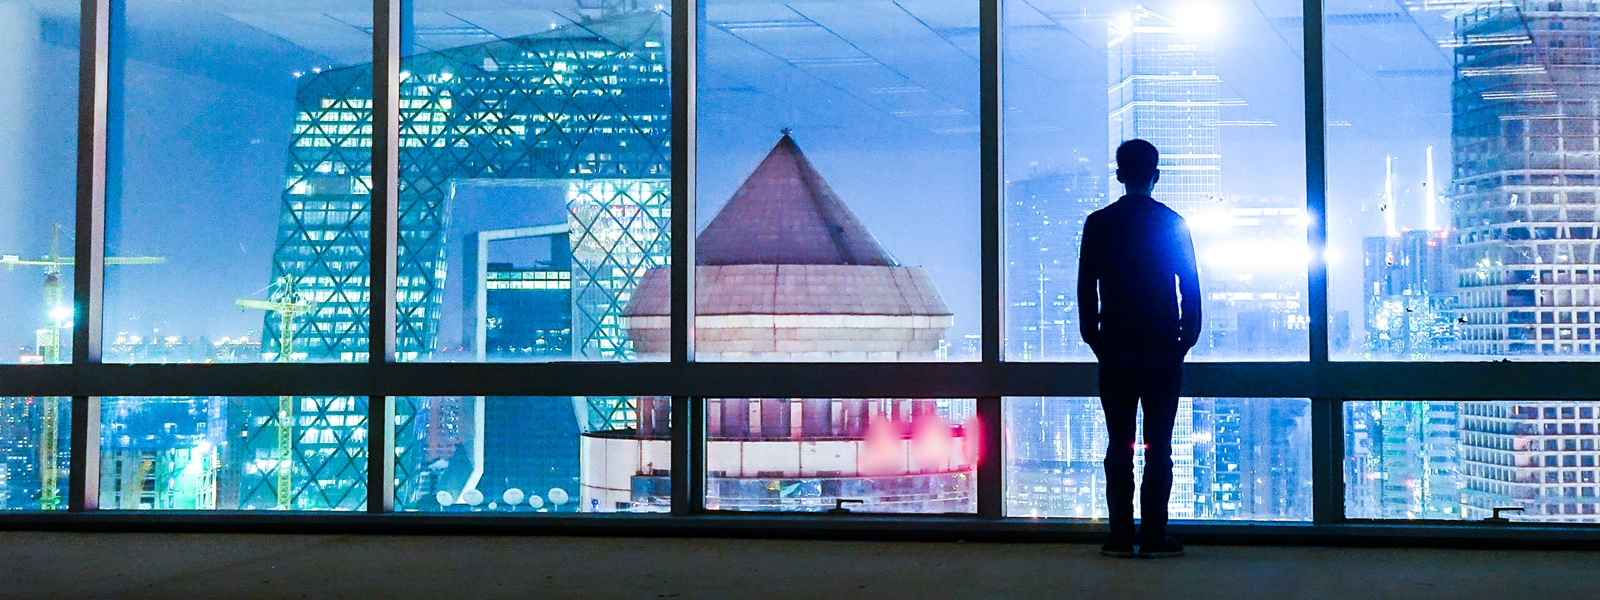 Man stands in a windowed office overlooking a city at night